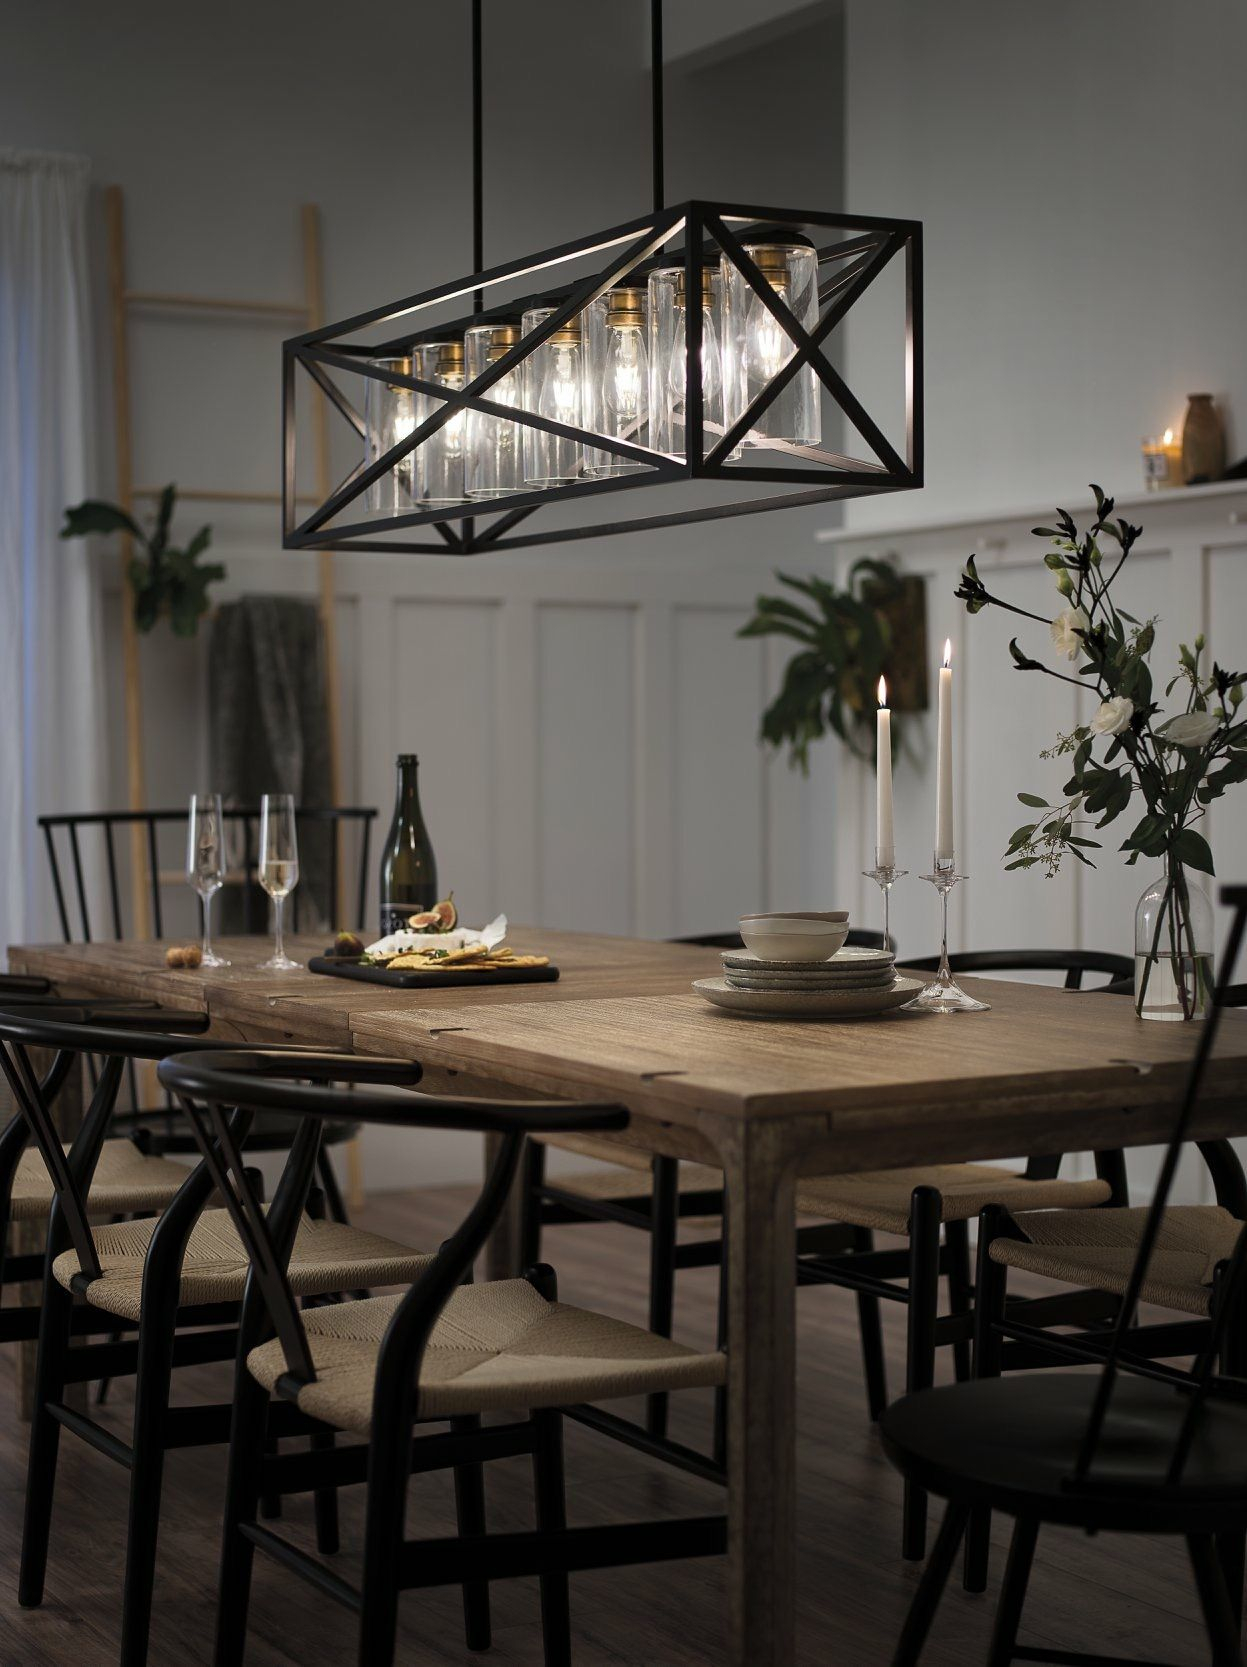 Kichler Linear Chandelier In Dining Room | Lighting Throughout Freemont 5 Light Kitchen Island Linear Chandeliers (Photo 11 of 30)